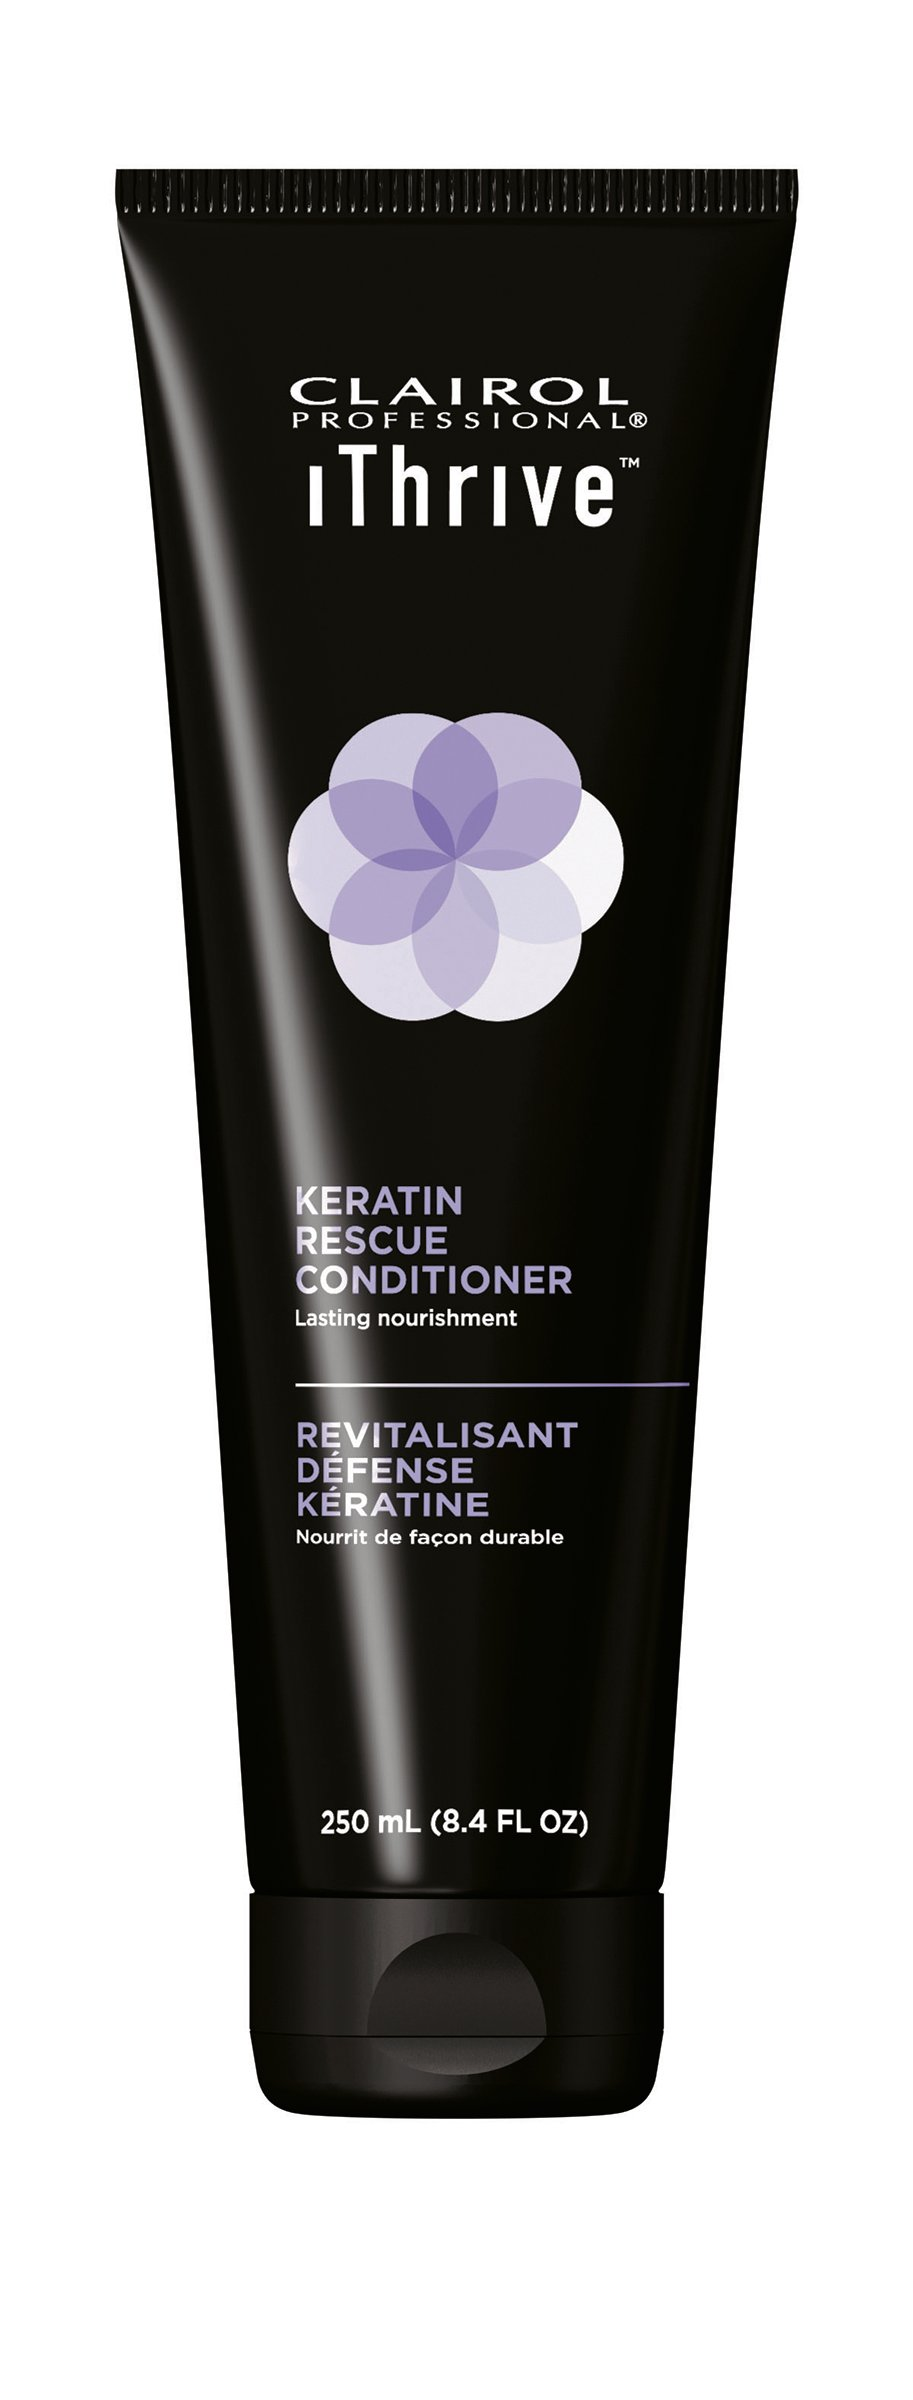 Clairol  Professional IThrive Keratin Rescue Conditioner creates a layer of protection around each hair, delivers lasting nourishment and revives dry, damaged hair.